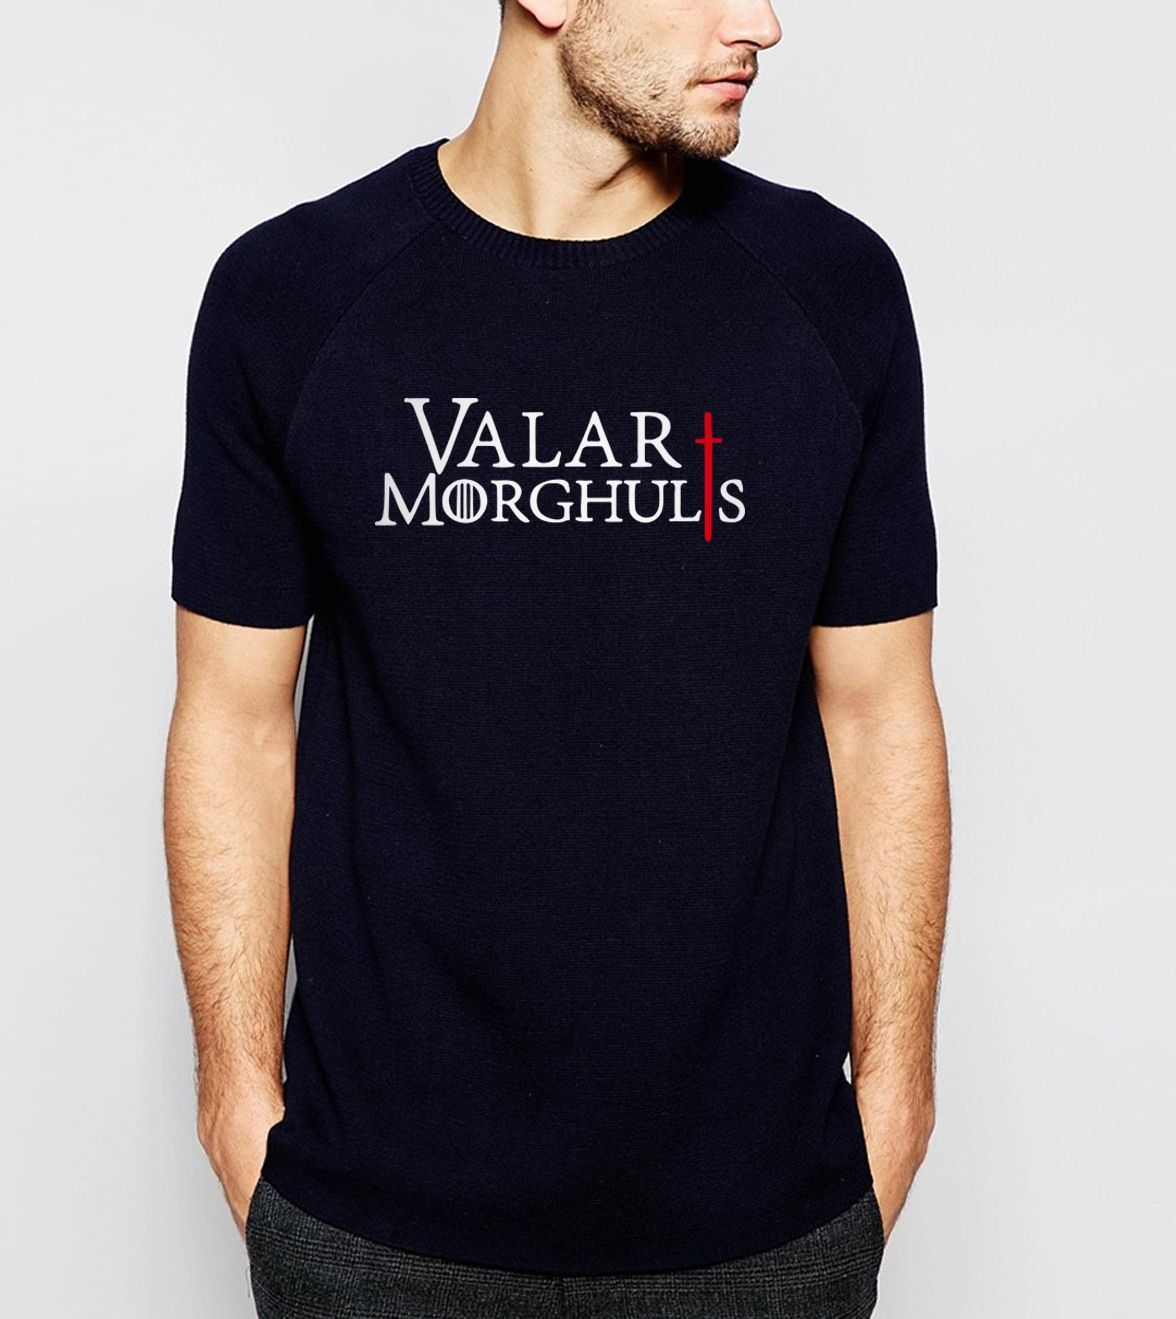 hot sale Game of Thrones Valar Morghulis Printes T-shirt 2017 Summer Fashion Casual Short Sleeve O-neck Men T shirts 100% Cotton